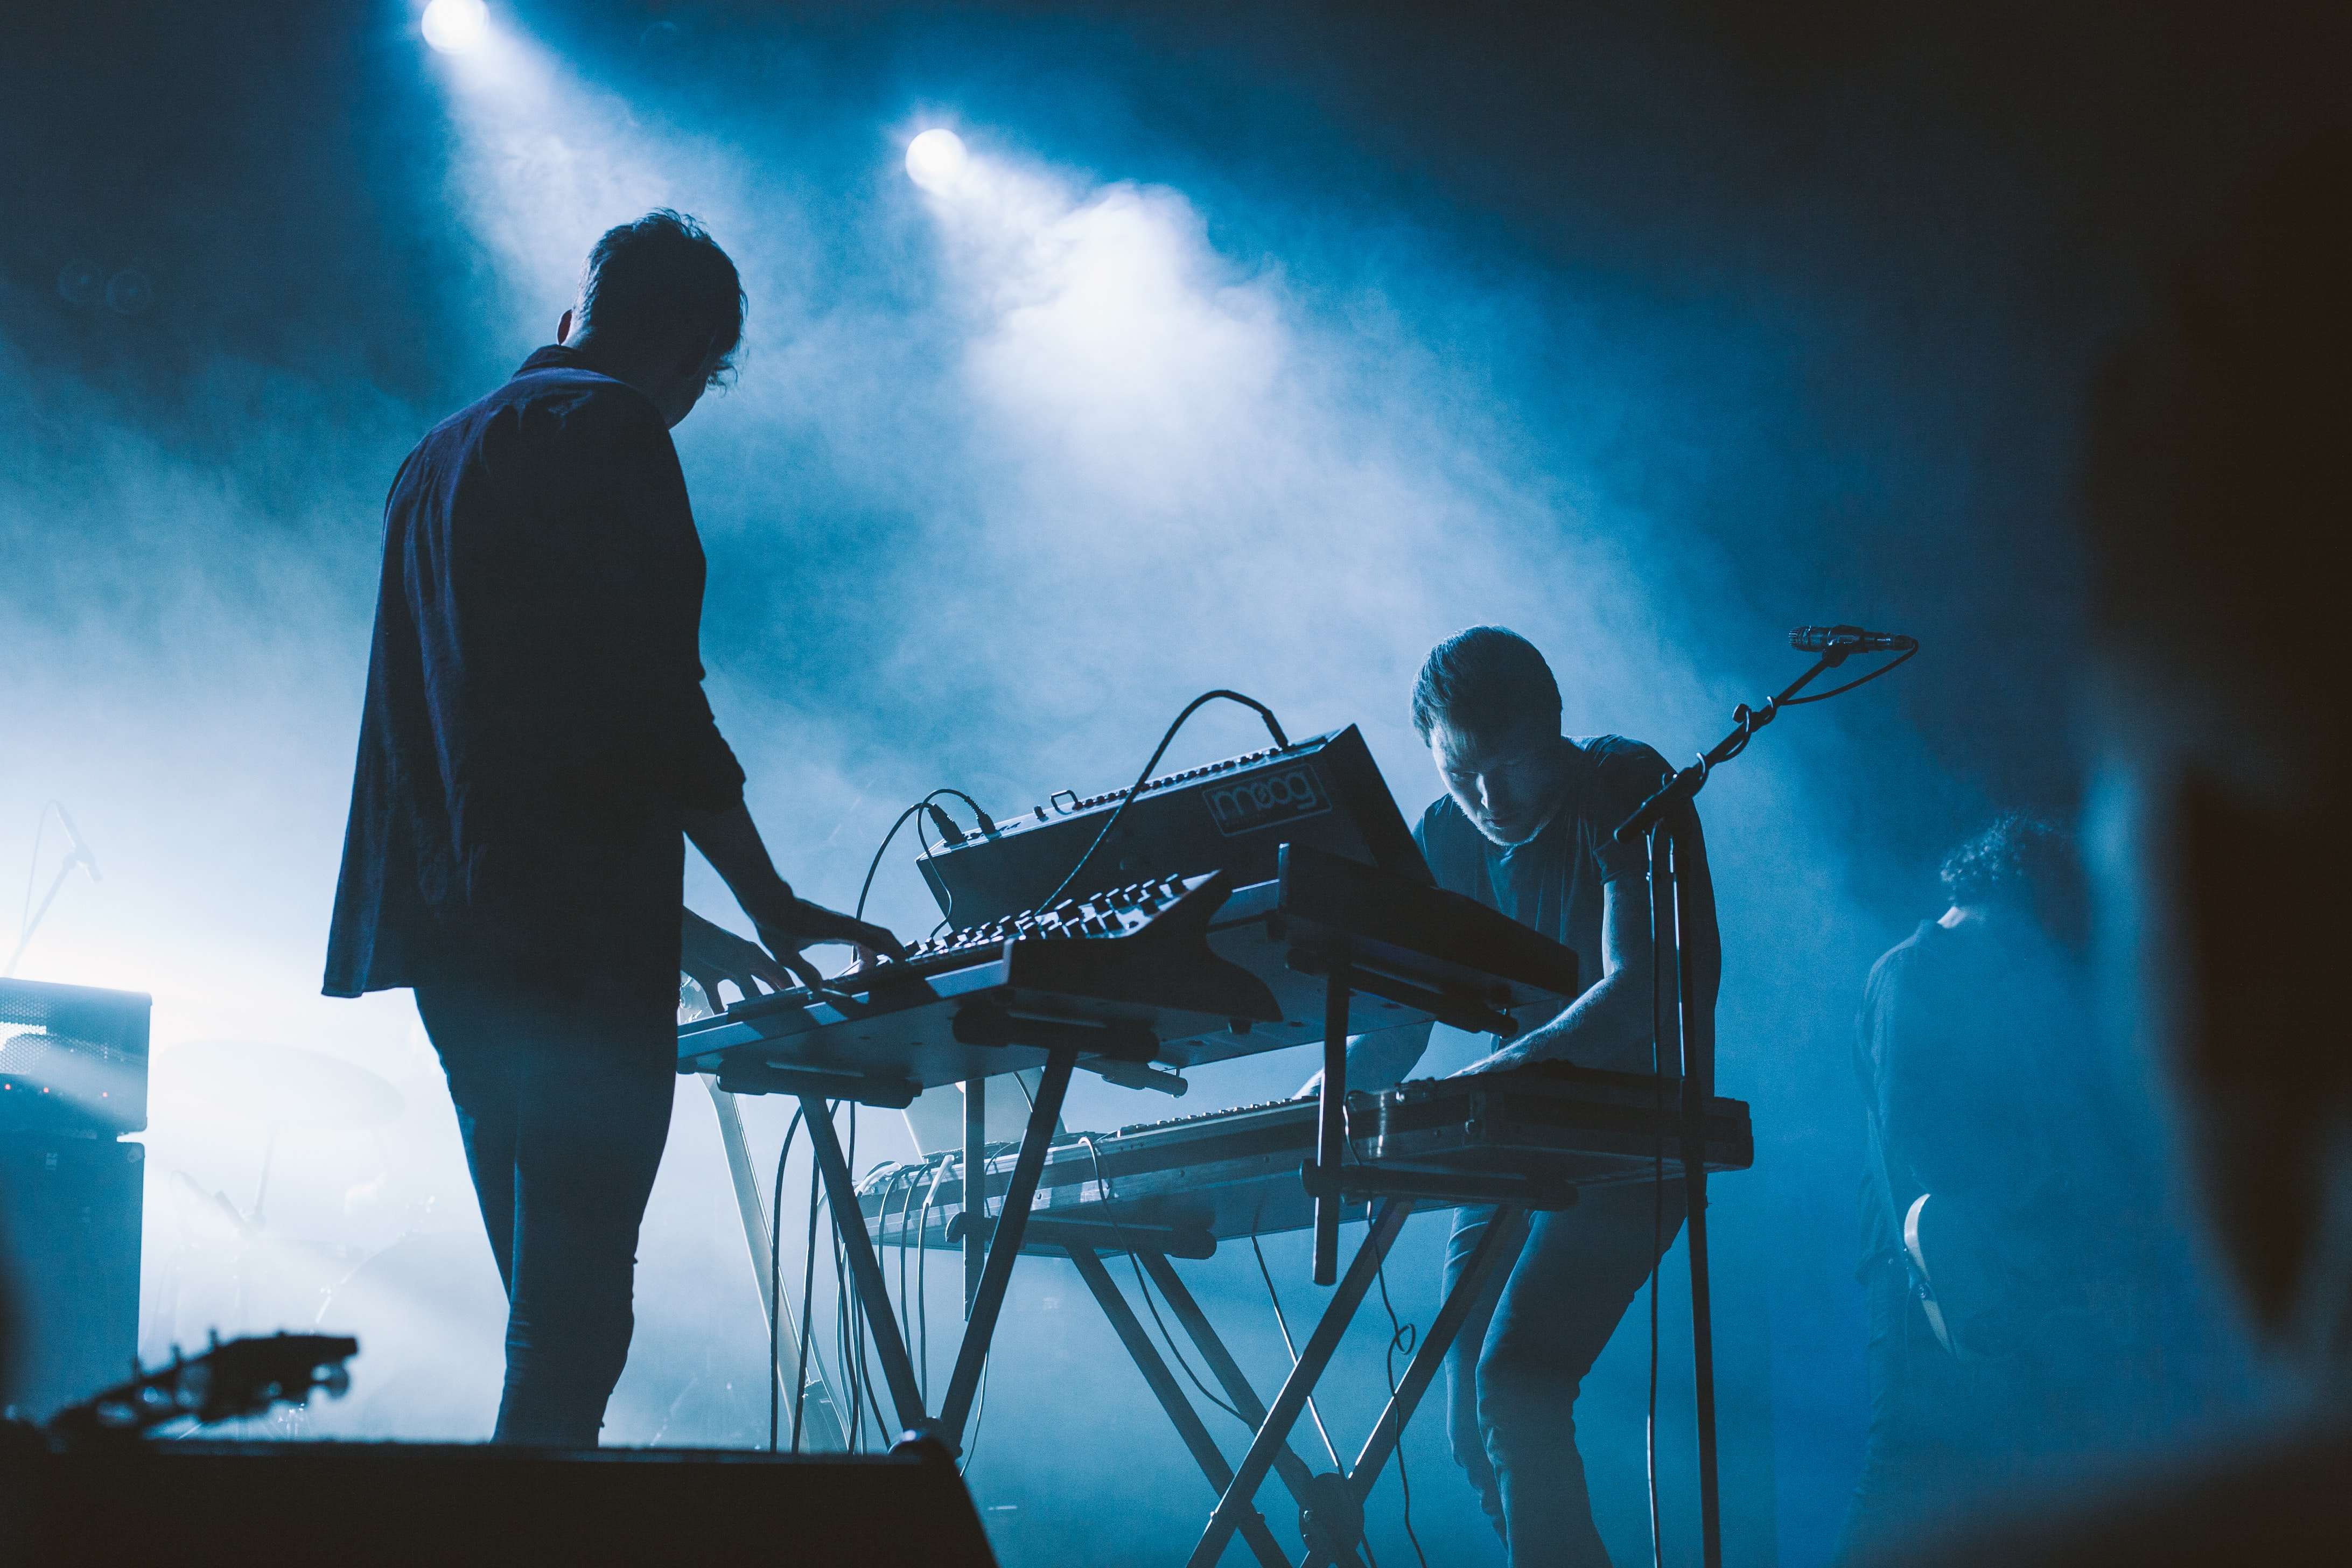 Electronic musicians play a show in blue stage lights and smoke